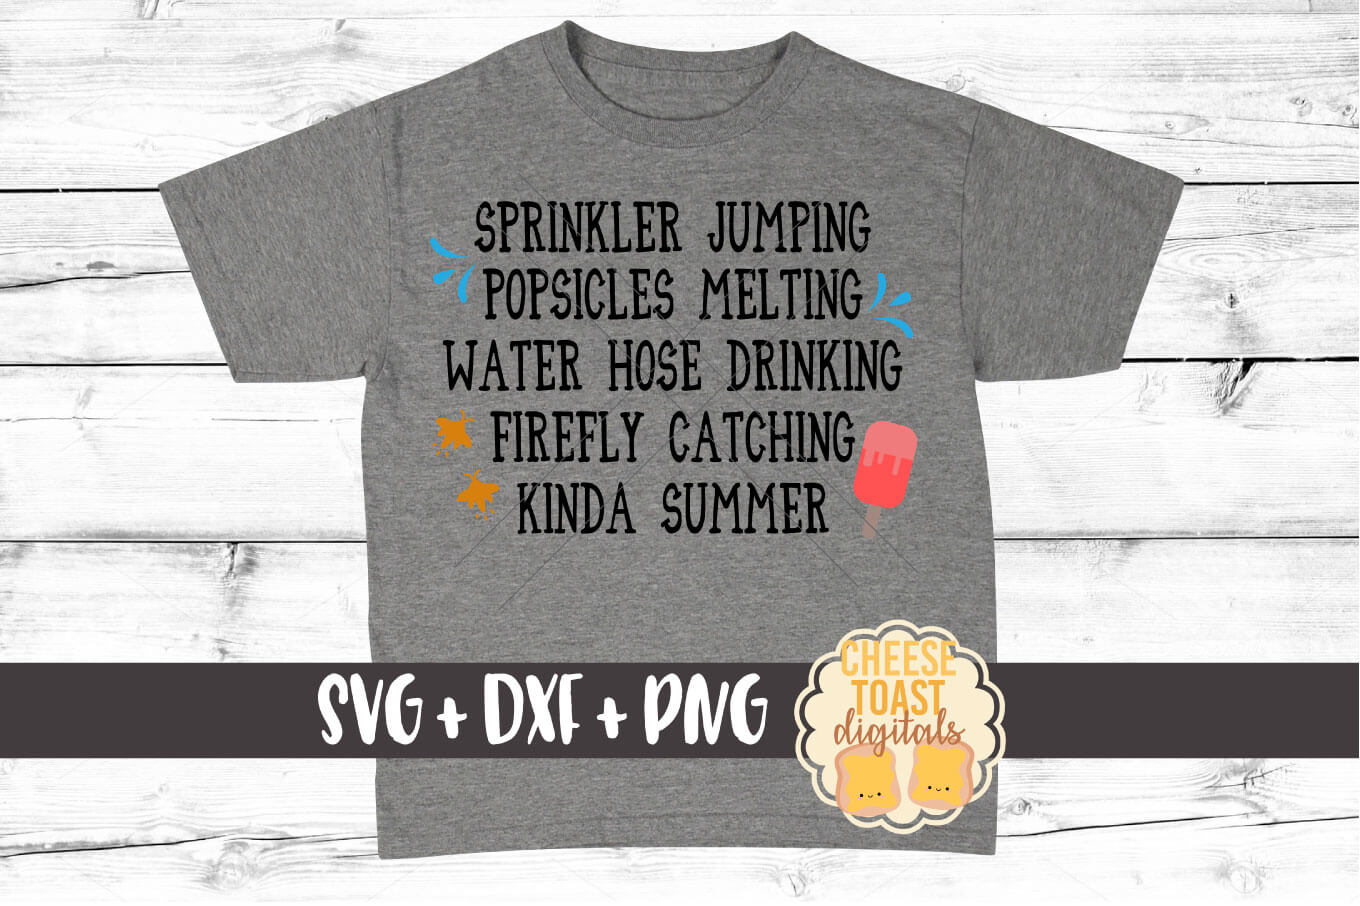 Sprinkler Jumping Popsicles Melting Water Hose Drinking Firefly Catching Kinda Summer - SVG, PNG, DXF